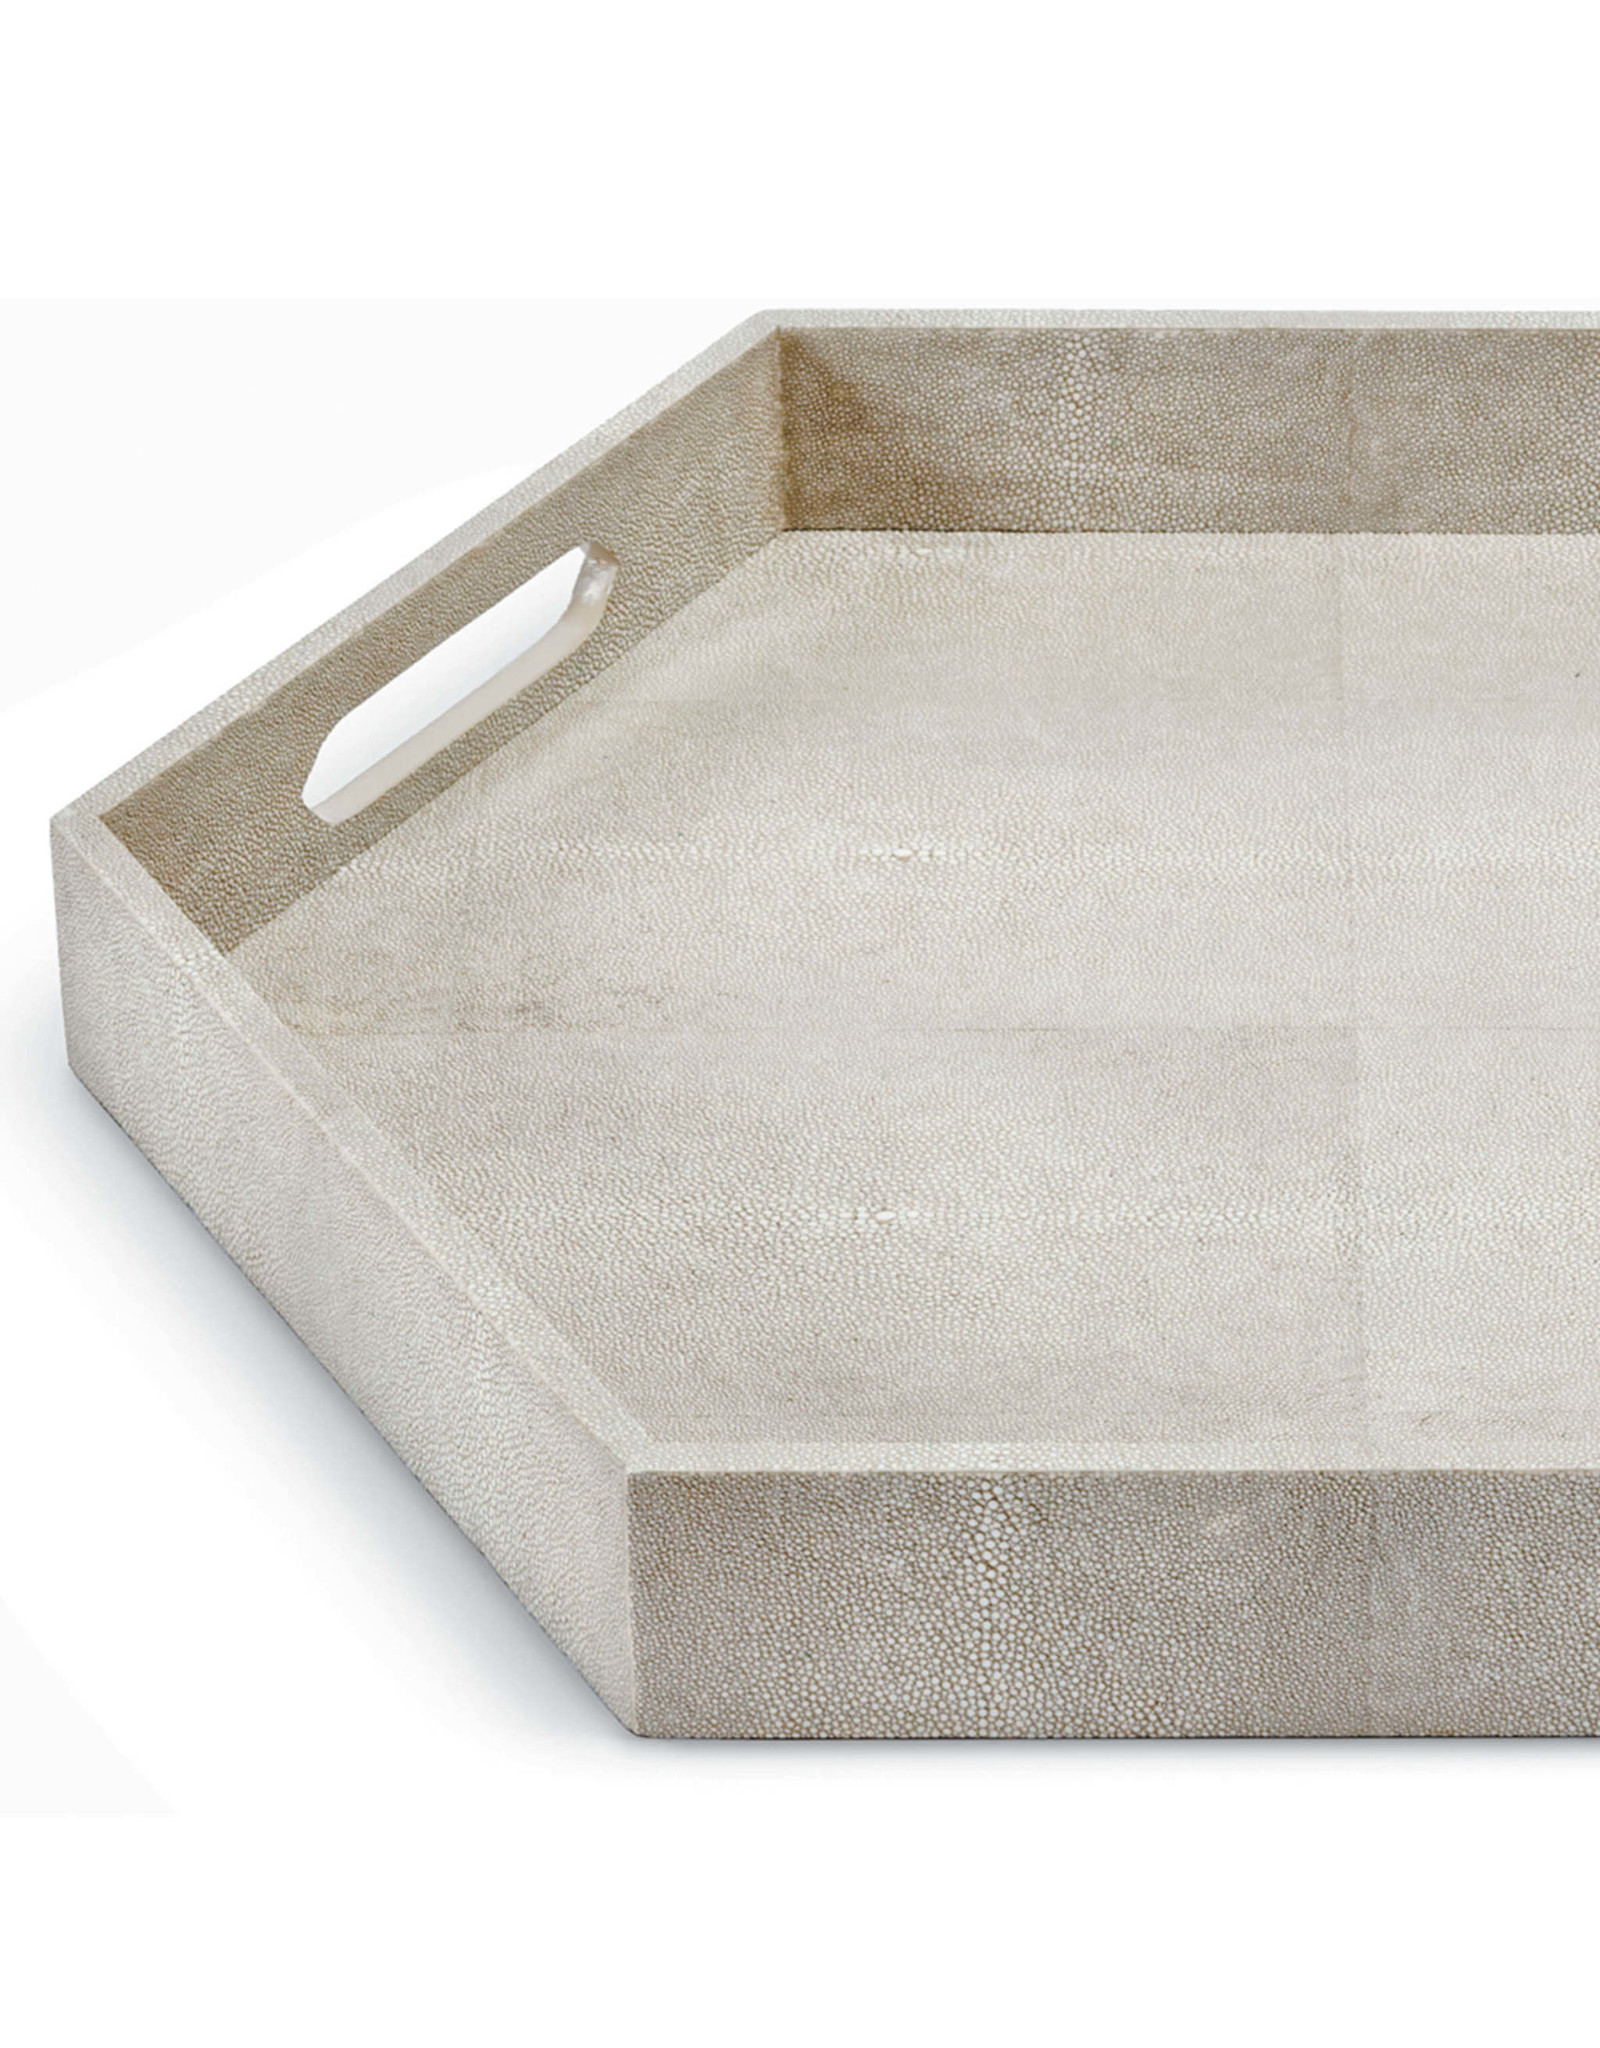 Regina Andrew Design Shagreen Hex Tray (Ivory Grey)